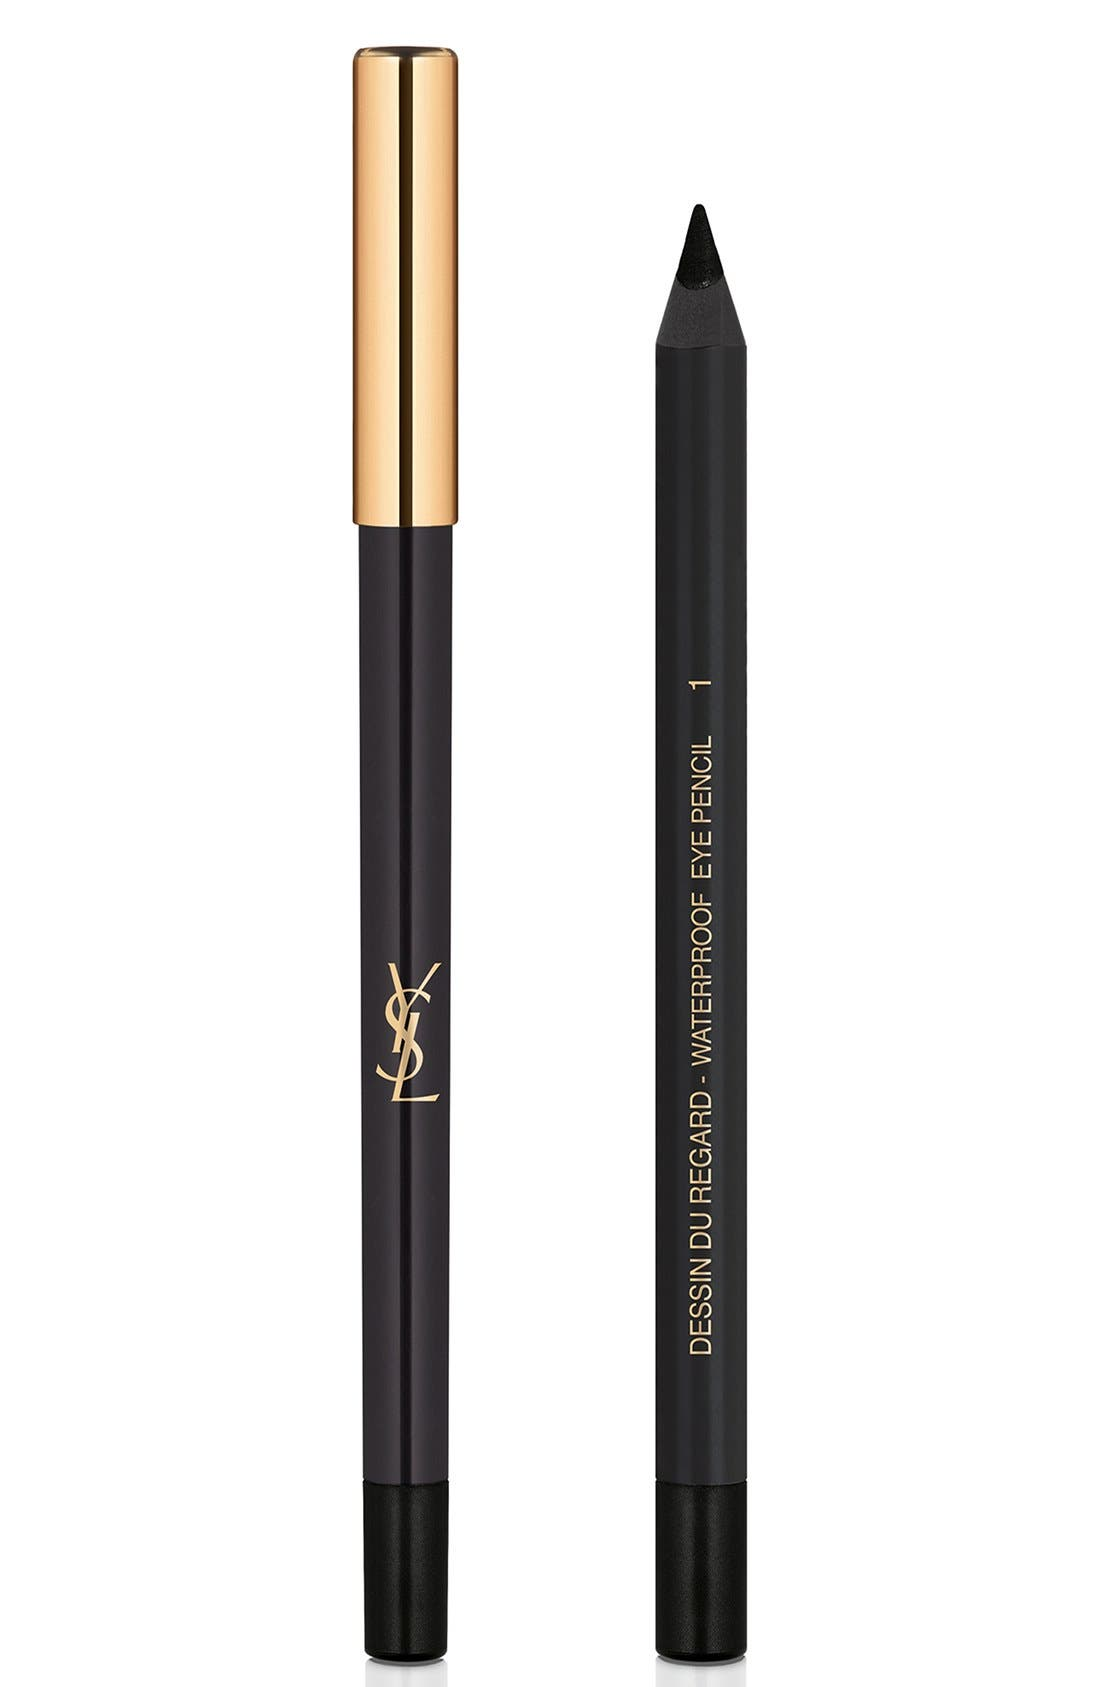 Yves Saint Laurent 'Dessin du Regard' Waterproof Eyeliner Pencil